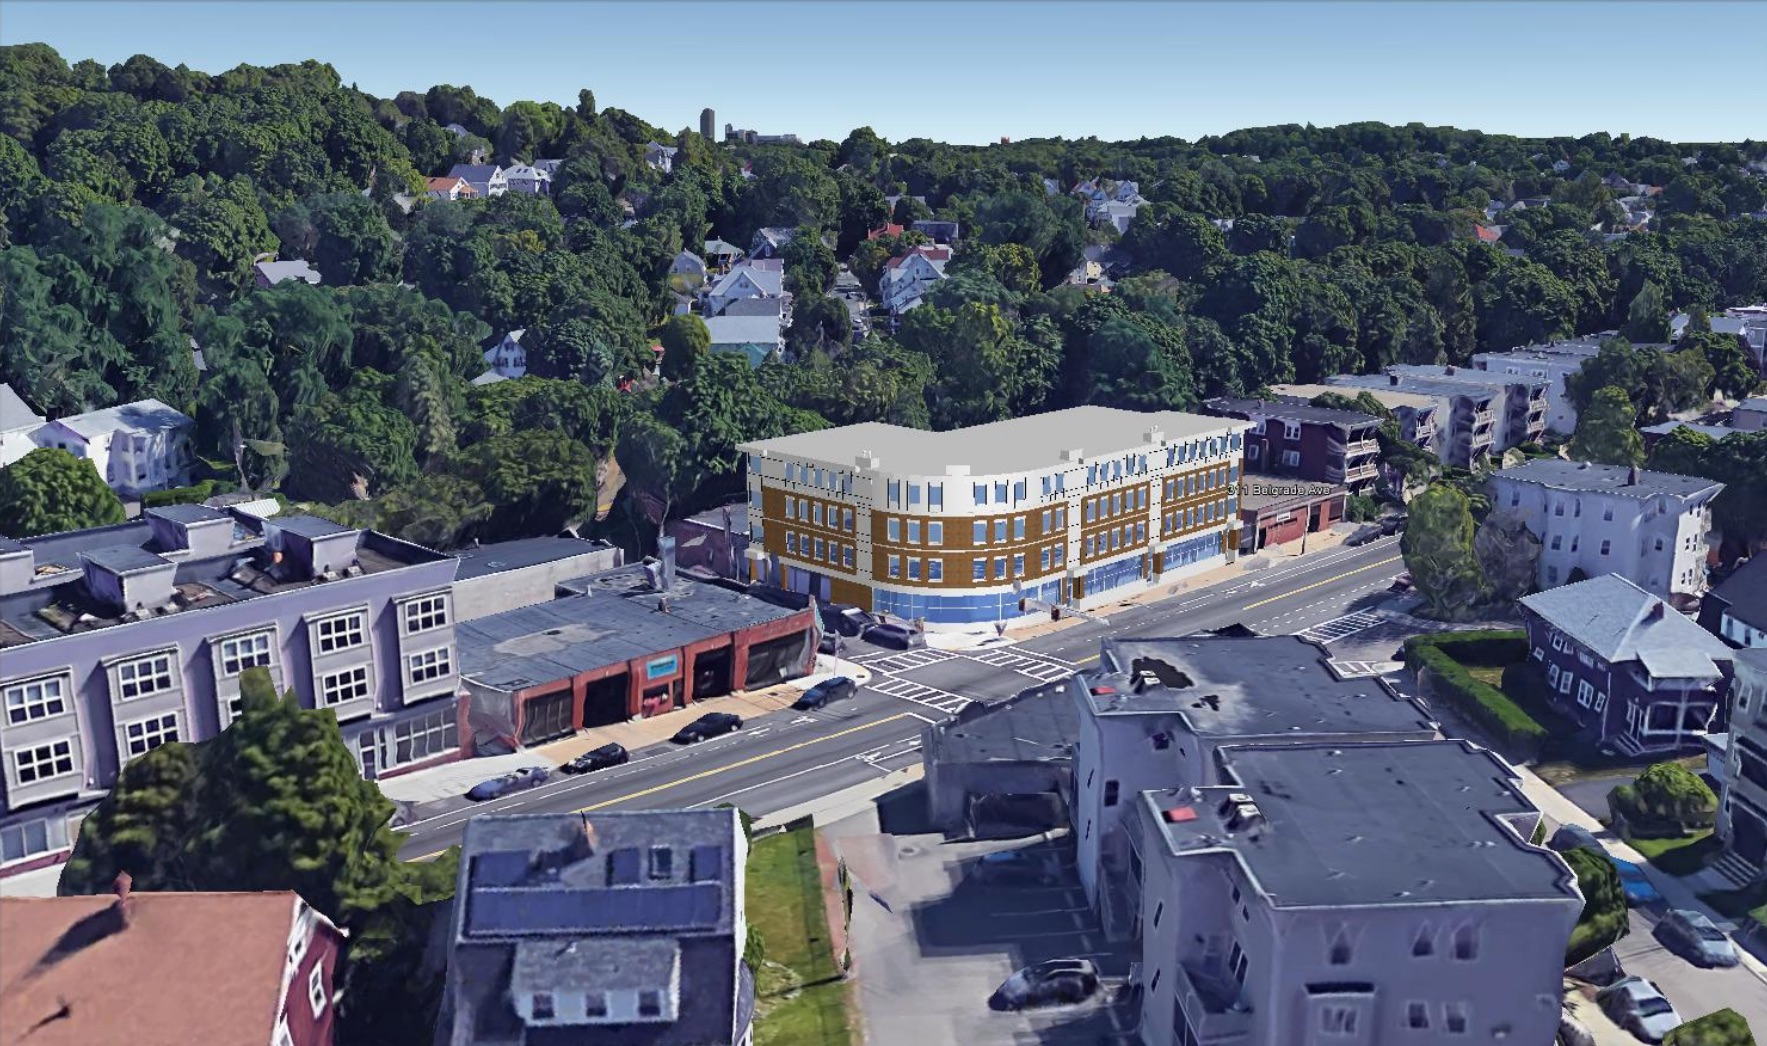 317 belgrade avenue roslindale west roxbury proposed residential retail building development bellevue mbta commuter rail helm residential nunes trabucco architects